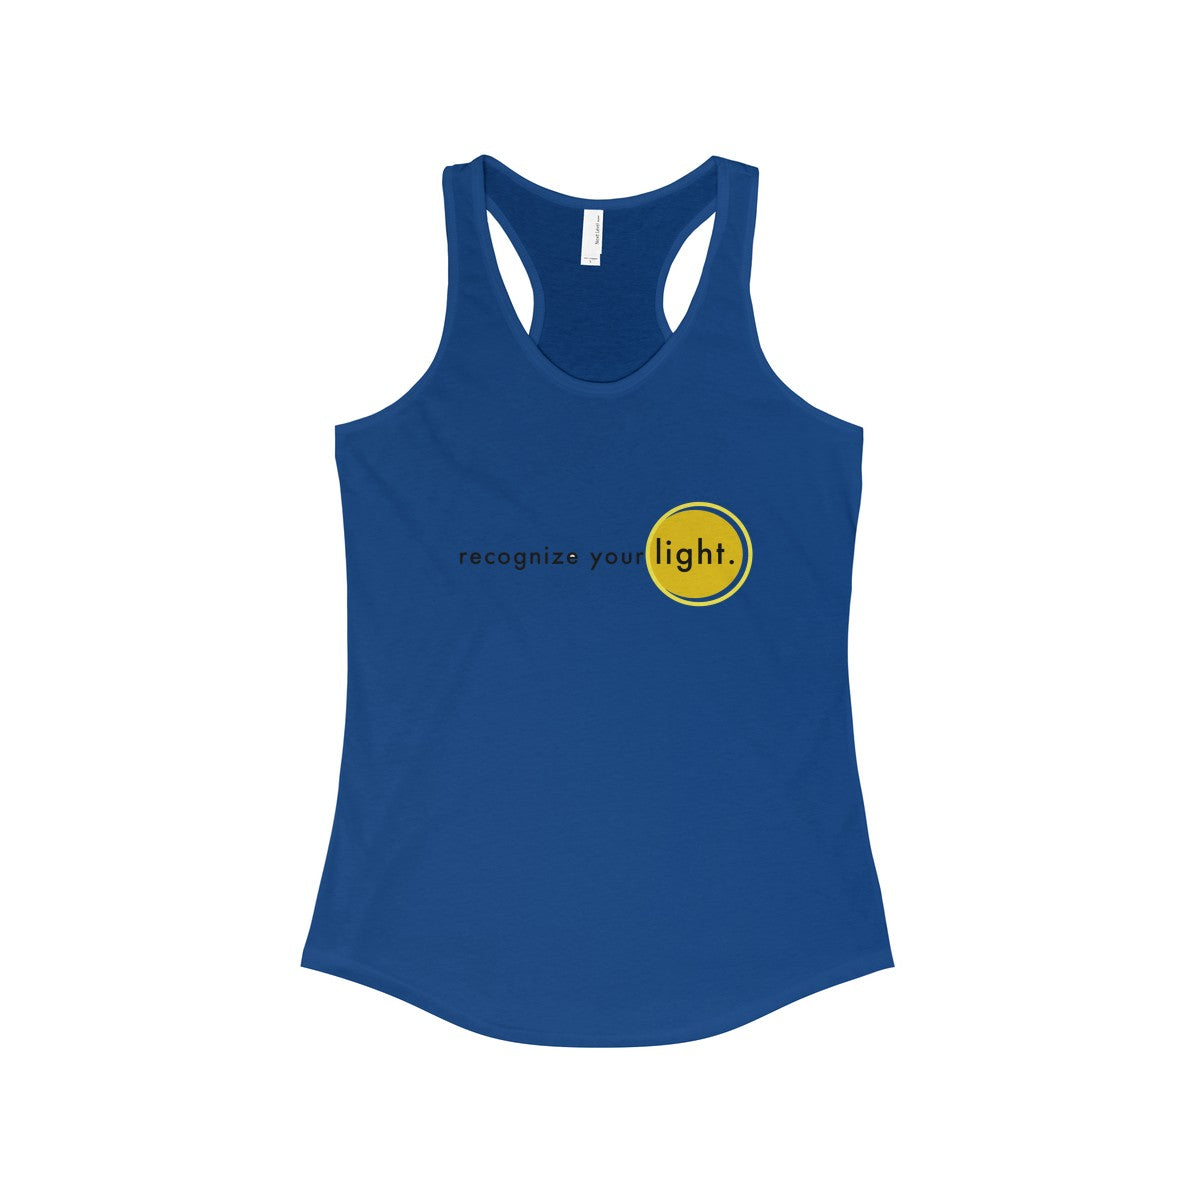 recognize your light... Women's Ideal Racerback Tank